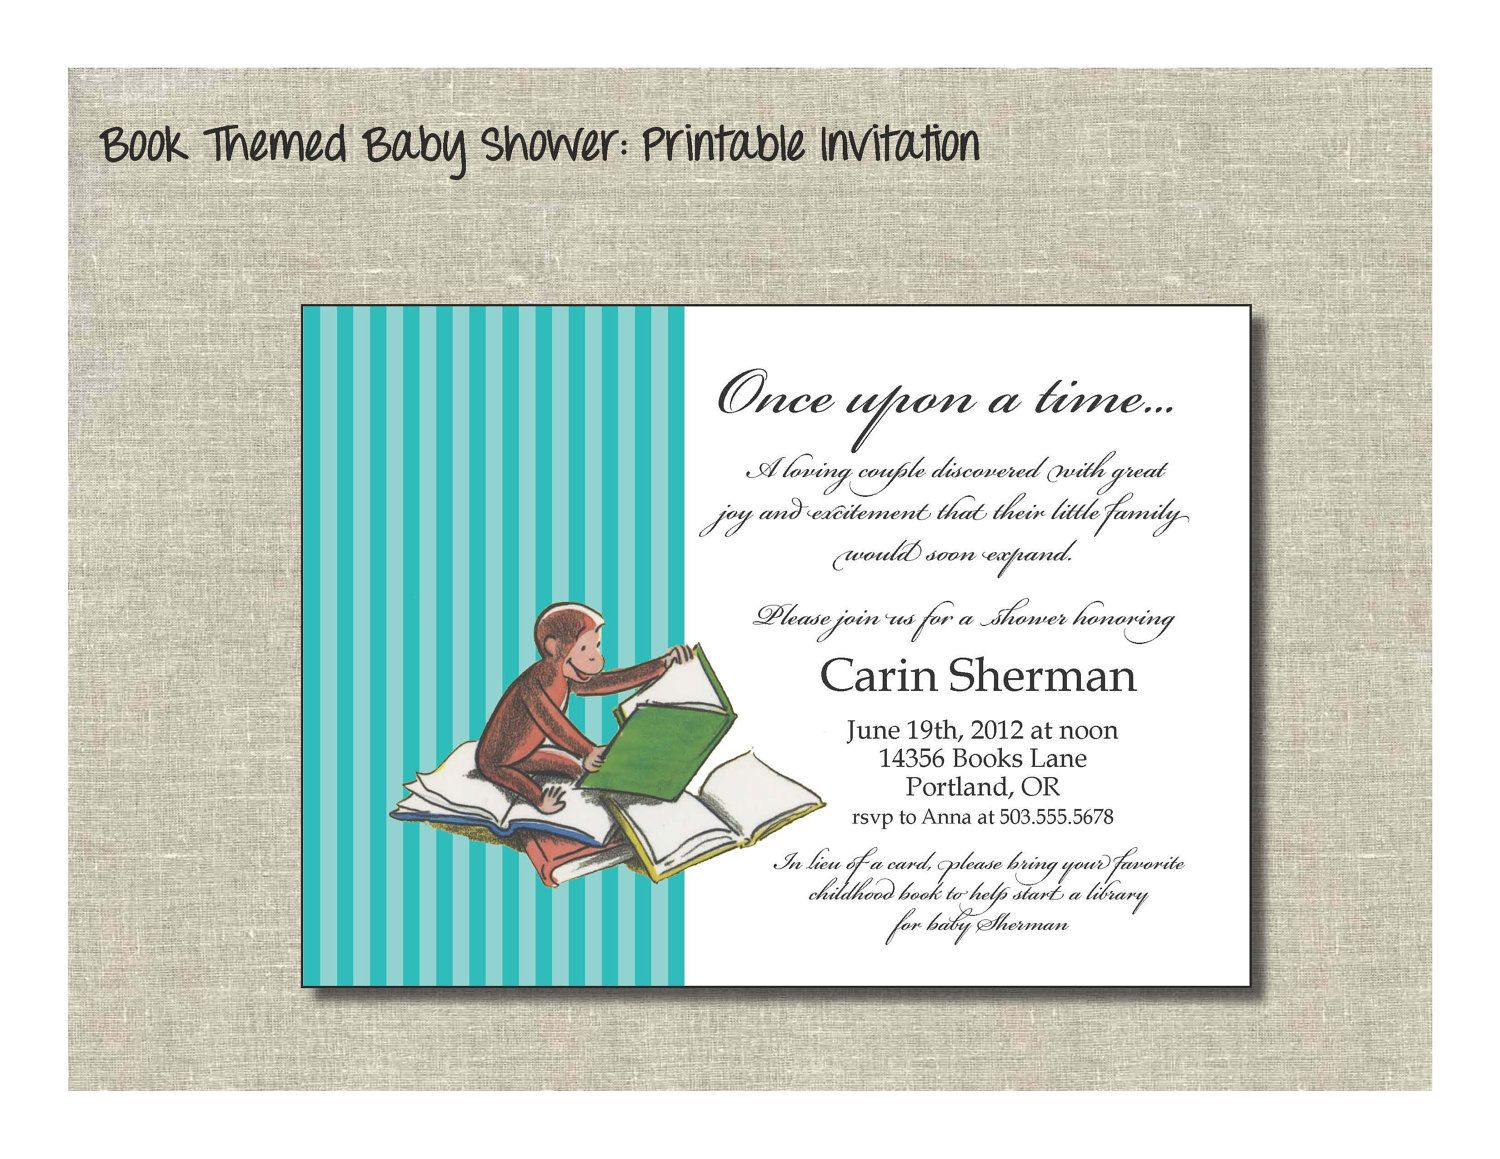 Book Themed Baby Shower Printable Invitation W Curious George 12 00 Via Etsy